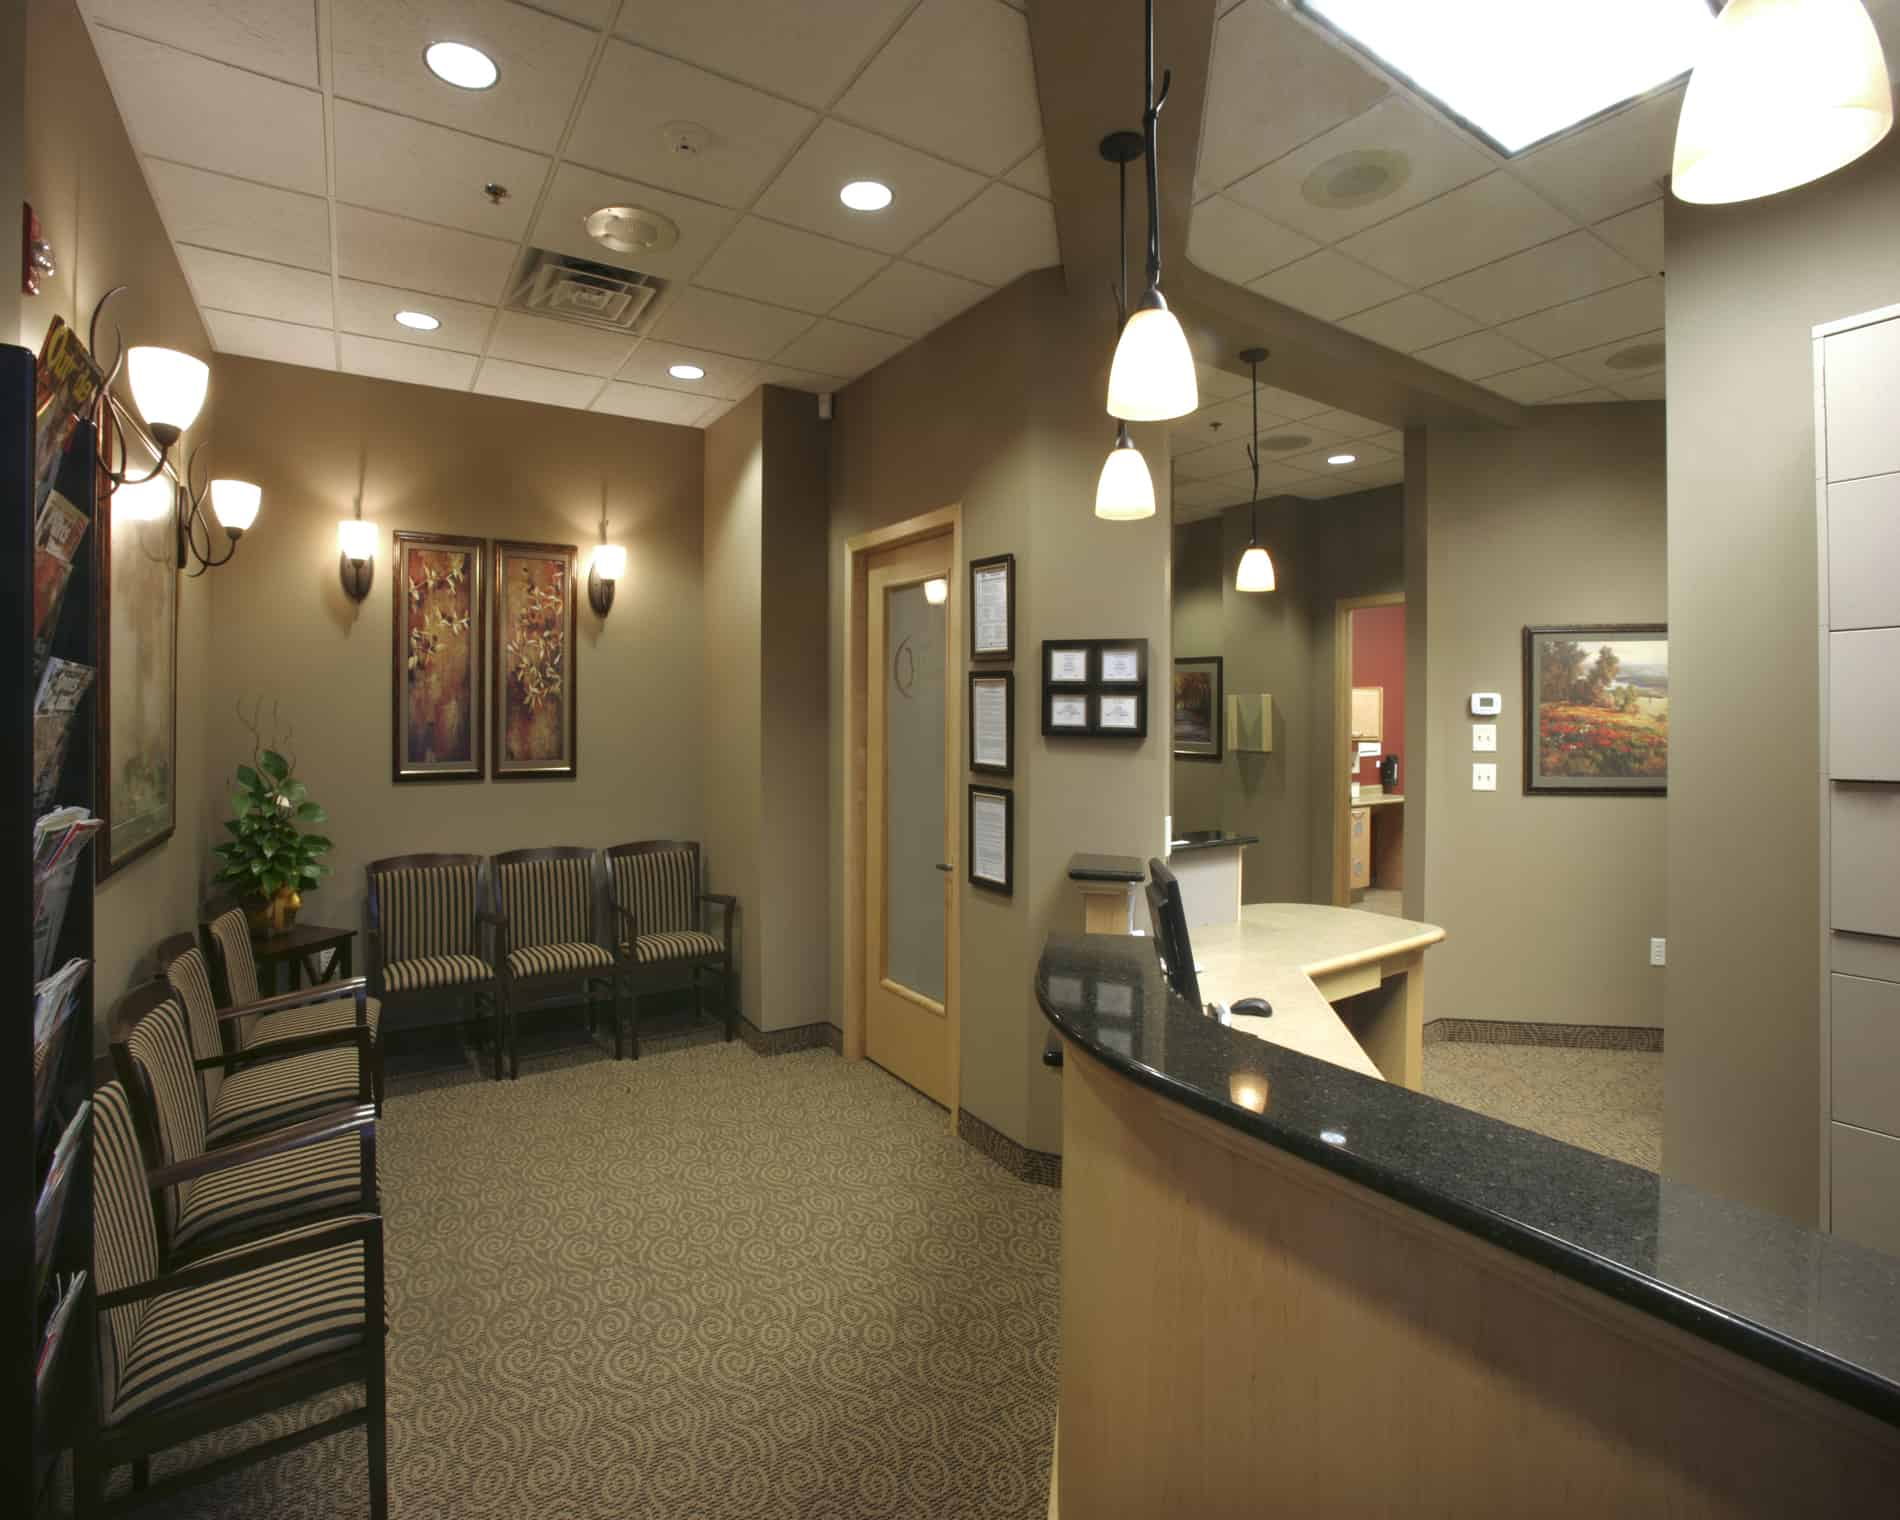 Oral and Facial Surgery Office, Dr. James Hughes